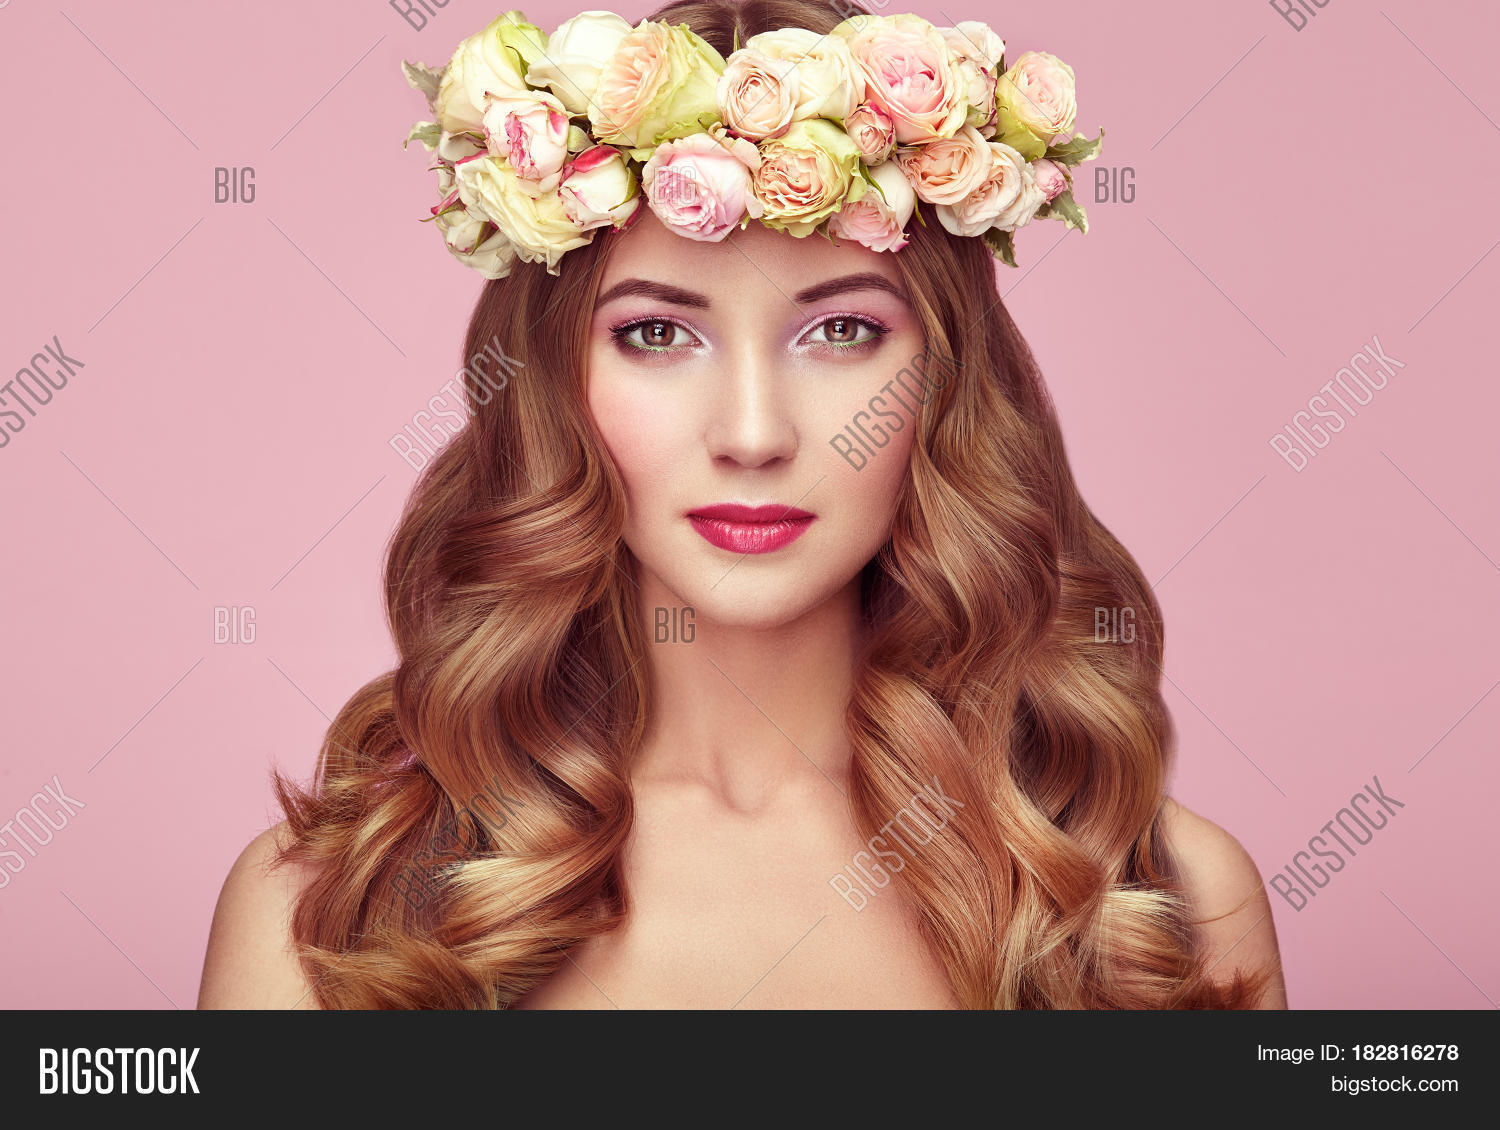 Beautiful blonde woman image photo free trial bigstock beautiful blonde woman with flower wreath on her head beauty girl with flowers hairstyle izmirmasajfo